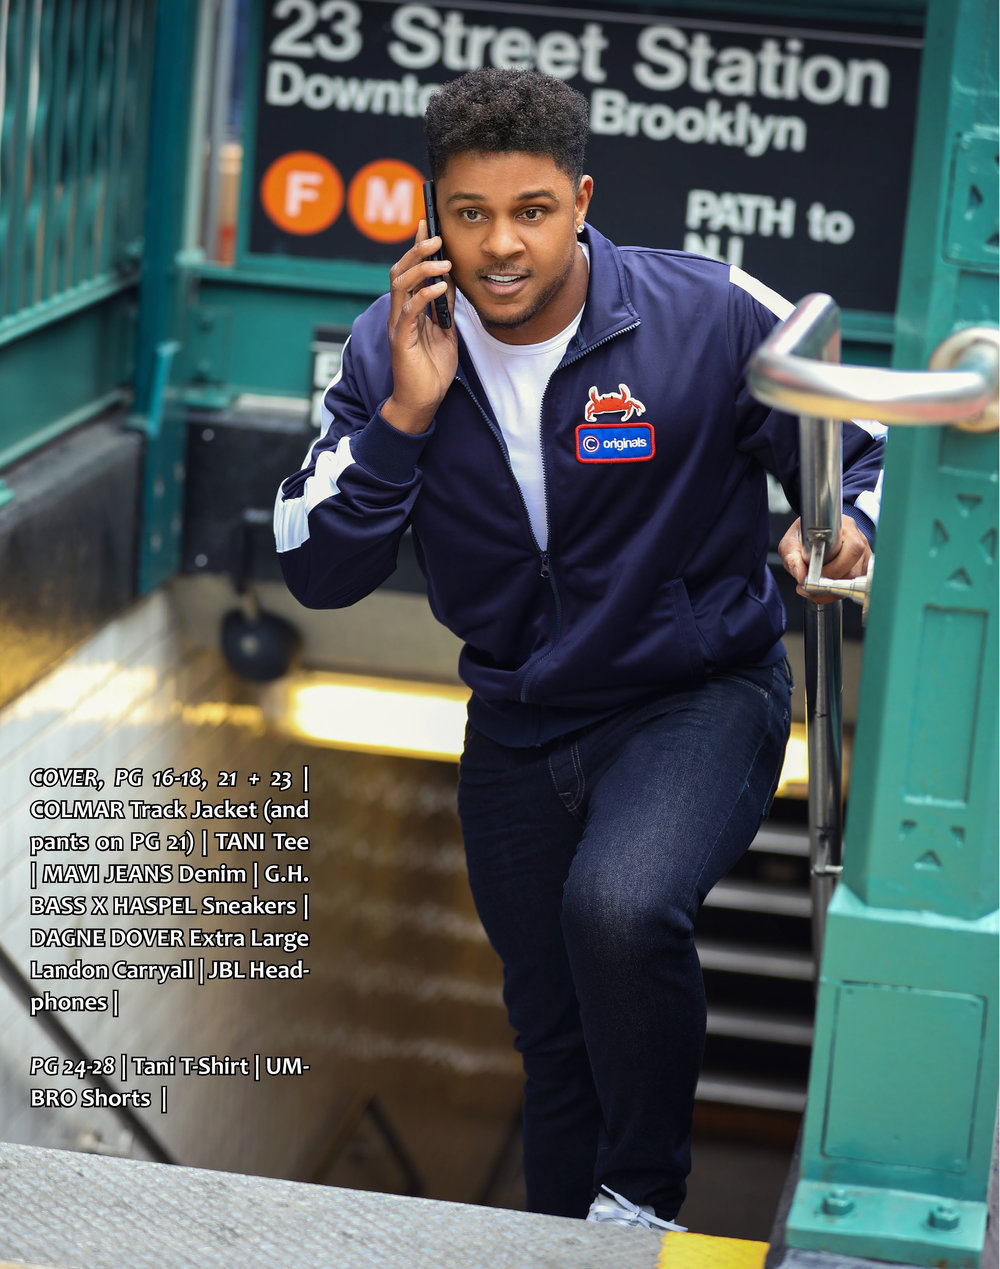 AM JUN HITTING THE STREETS WITH POOCH HALL-3.jpg